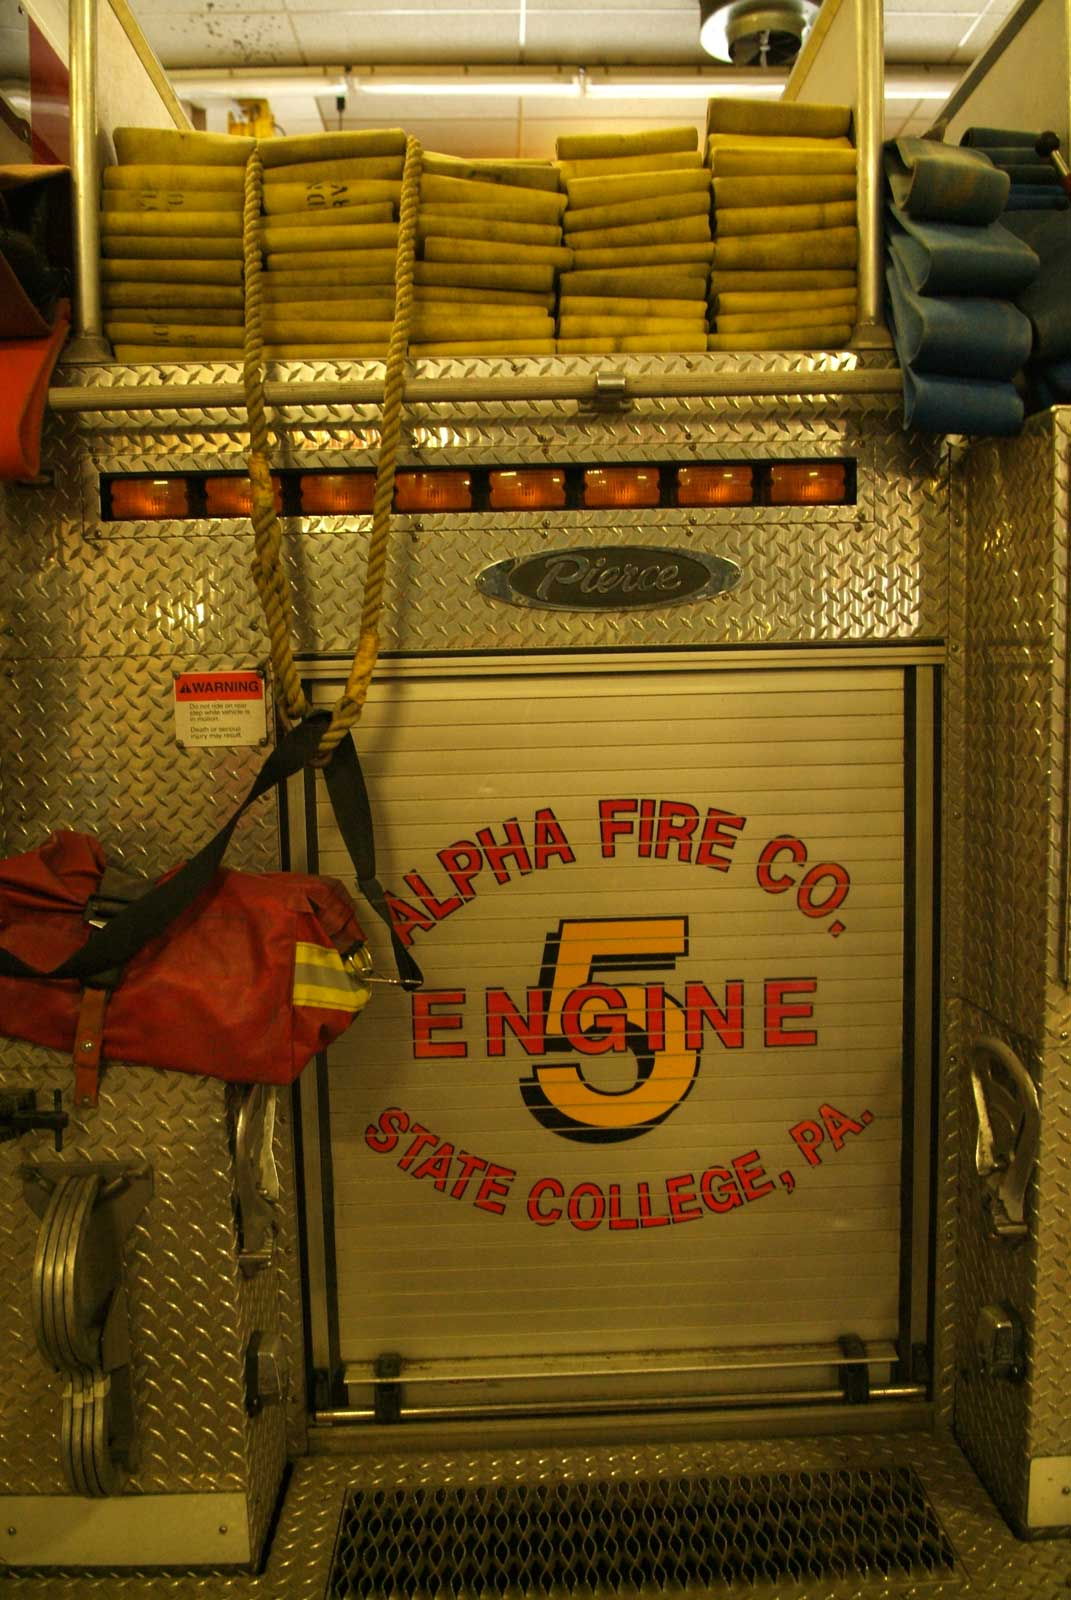 Storing the hydrant kit on a fire apparatus